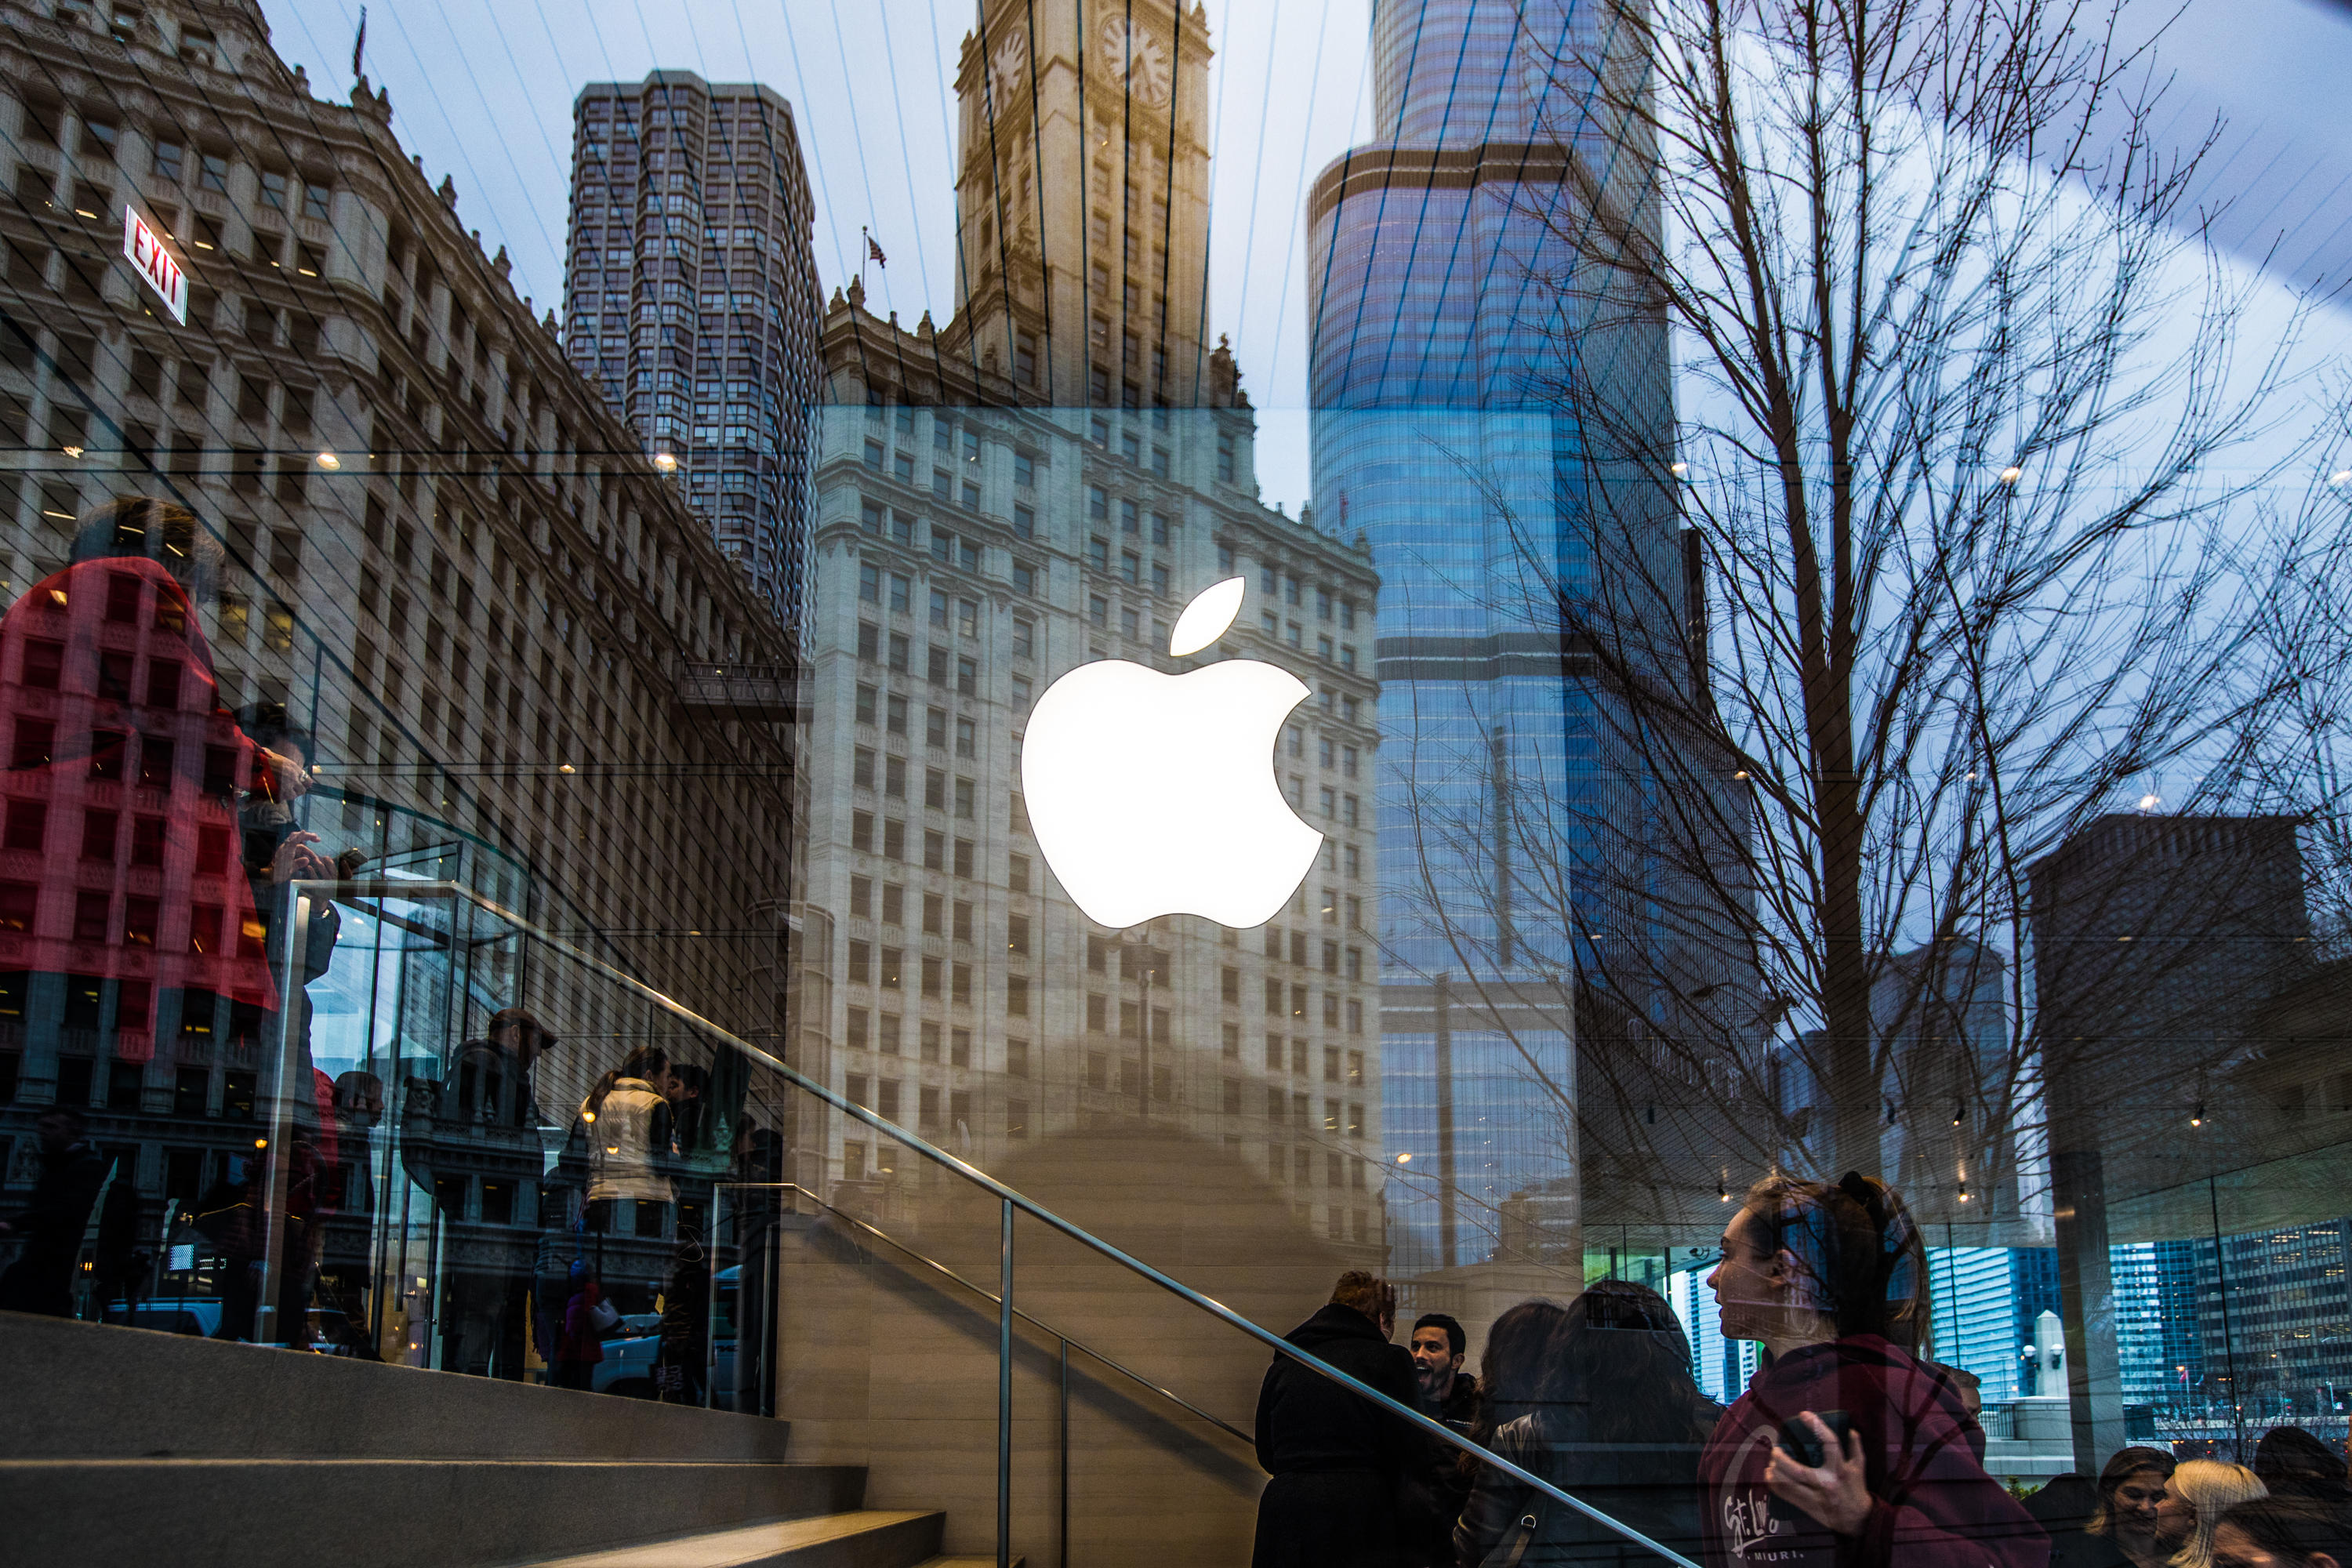 Gorgeous old Chicago buildings reflected in the window of the Apple Store there. Apple's logo is in the center.